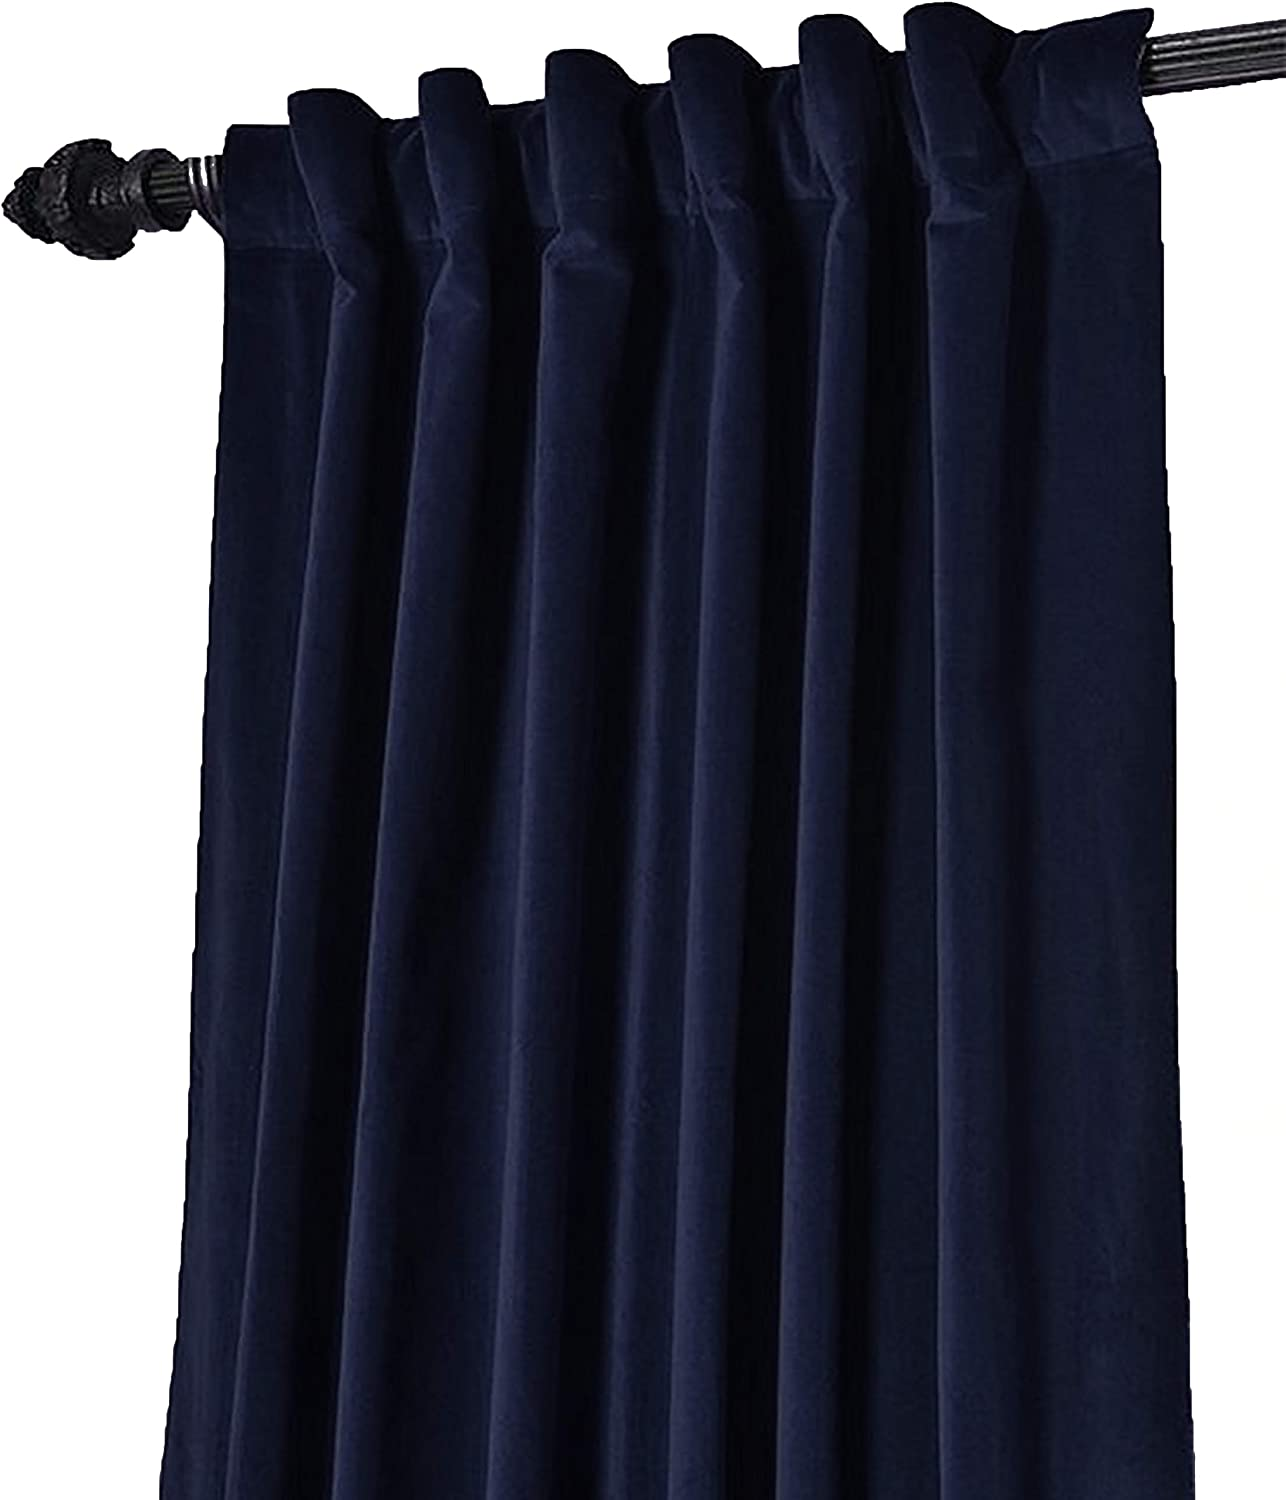 Amore Beaute Handcrafted Navy Blue lowest price Customi Velvet Regular discount Curtain Cotton